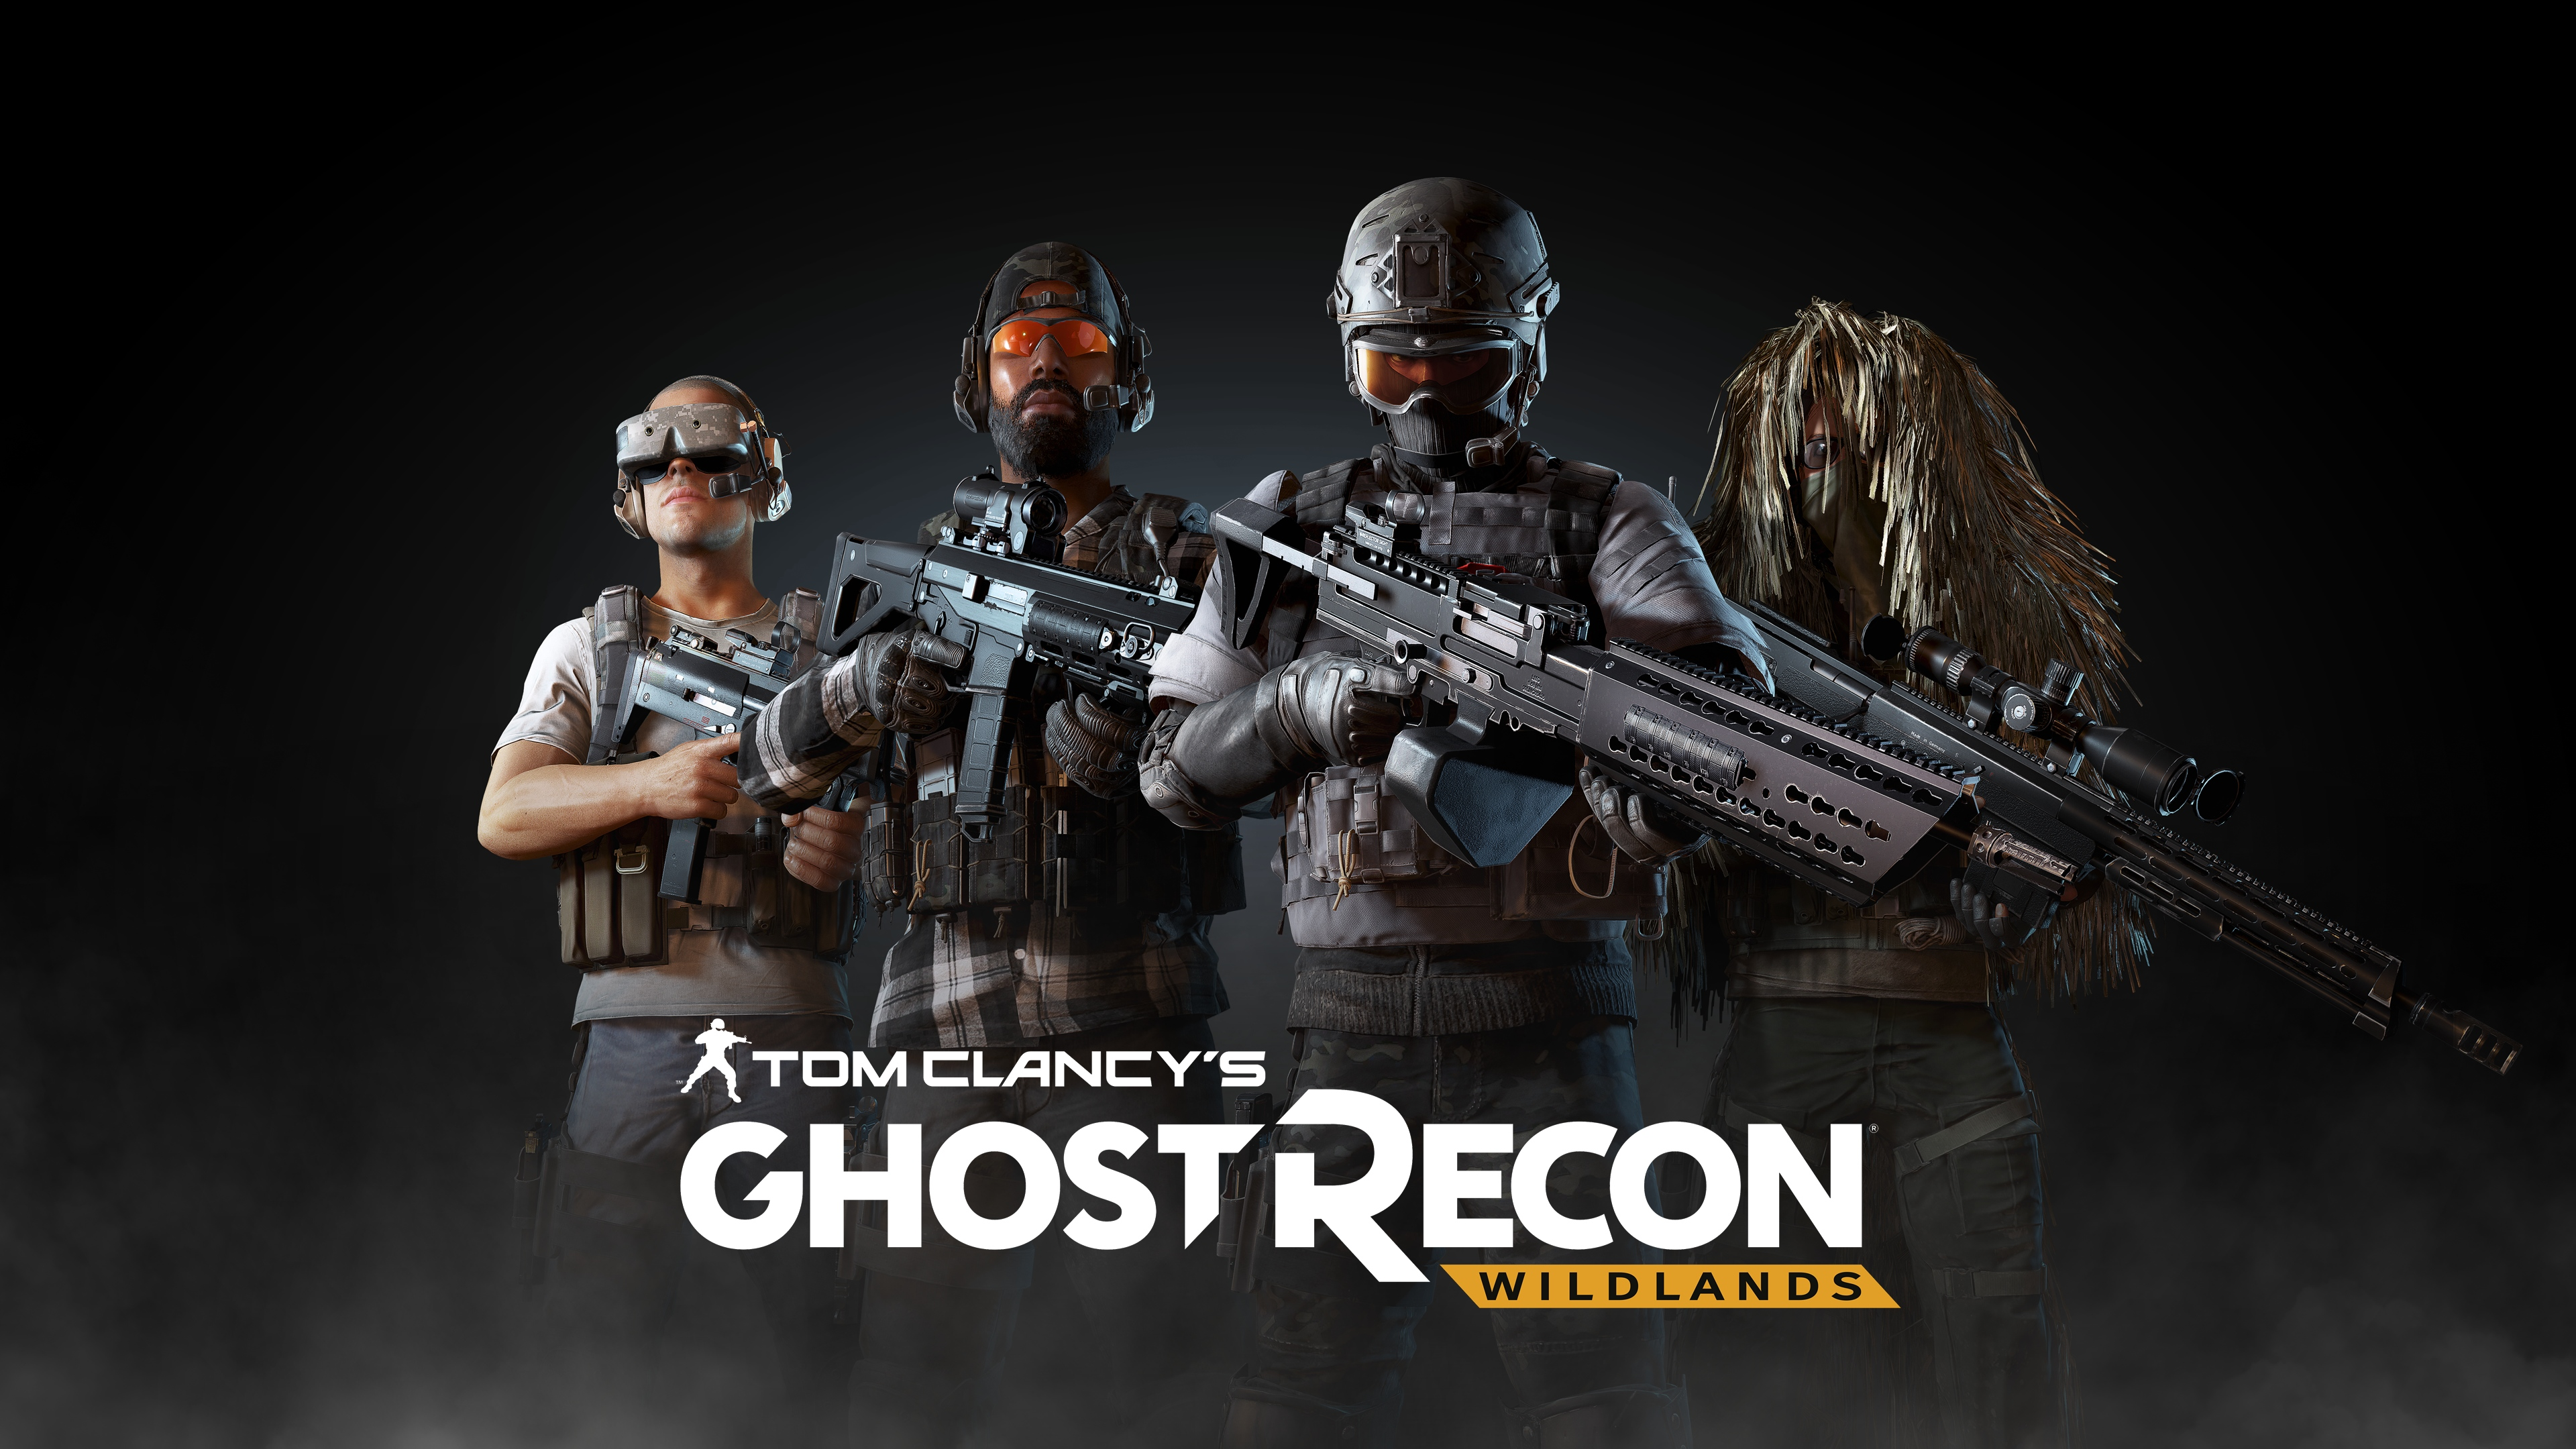 Ghost Recon Wildlands Parachuting Wallpaper 10222: Expansão Gratuita De Ghost Recon Wildlands